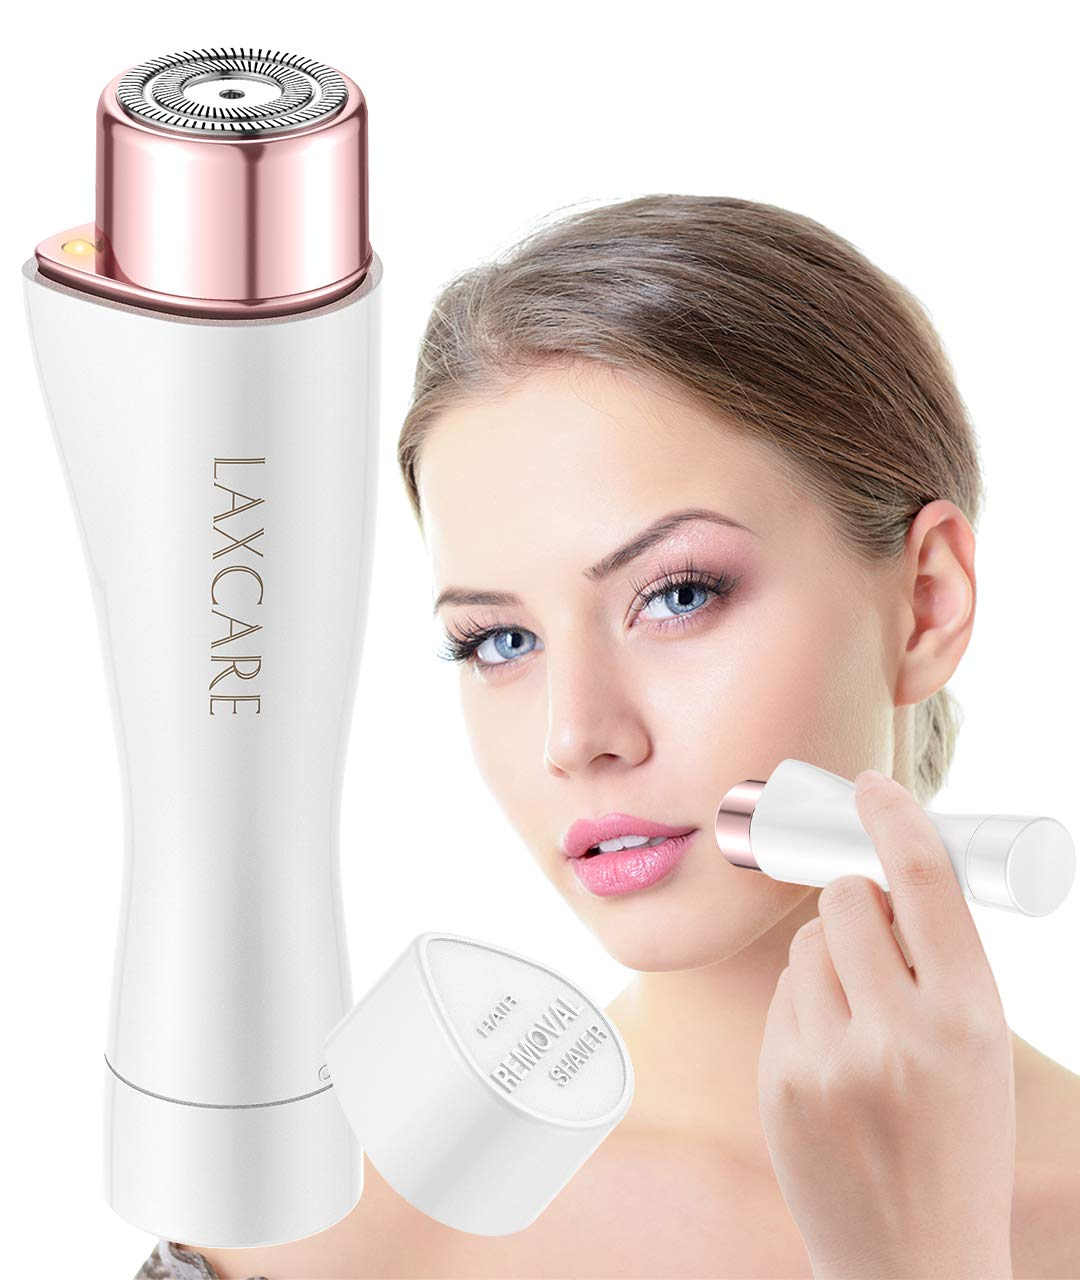 Facial Hair Removal for Women, Laxcare Painless Flawless Hair Remover Waterproof with Built-in LED Light